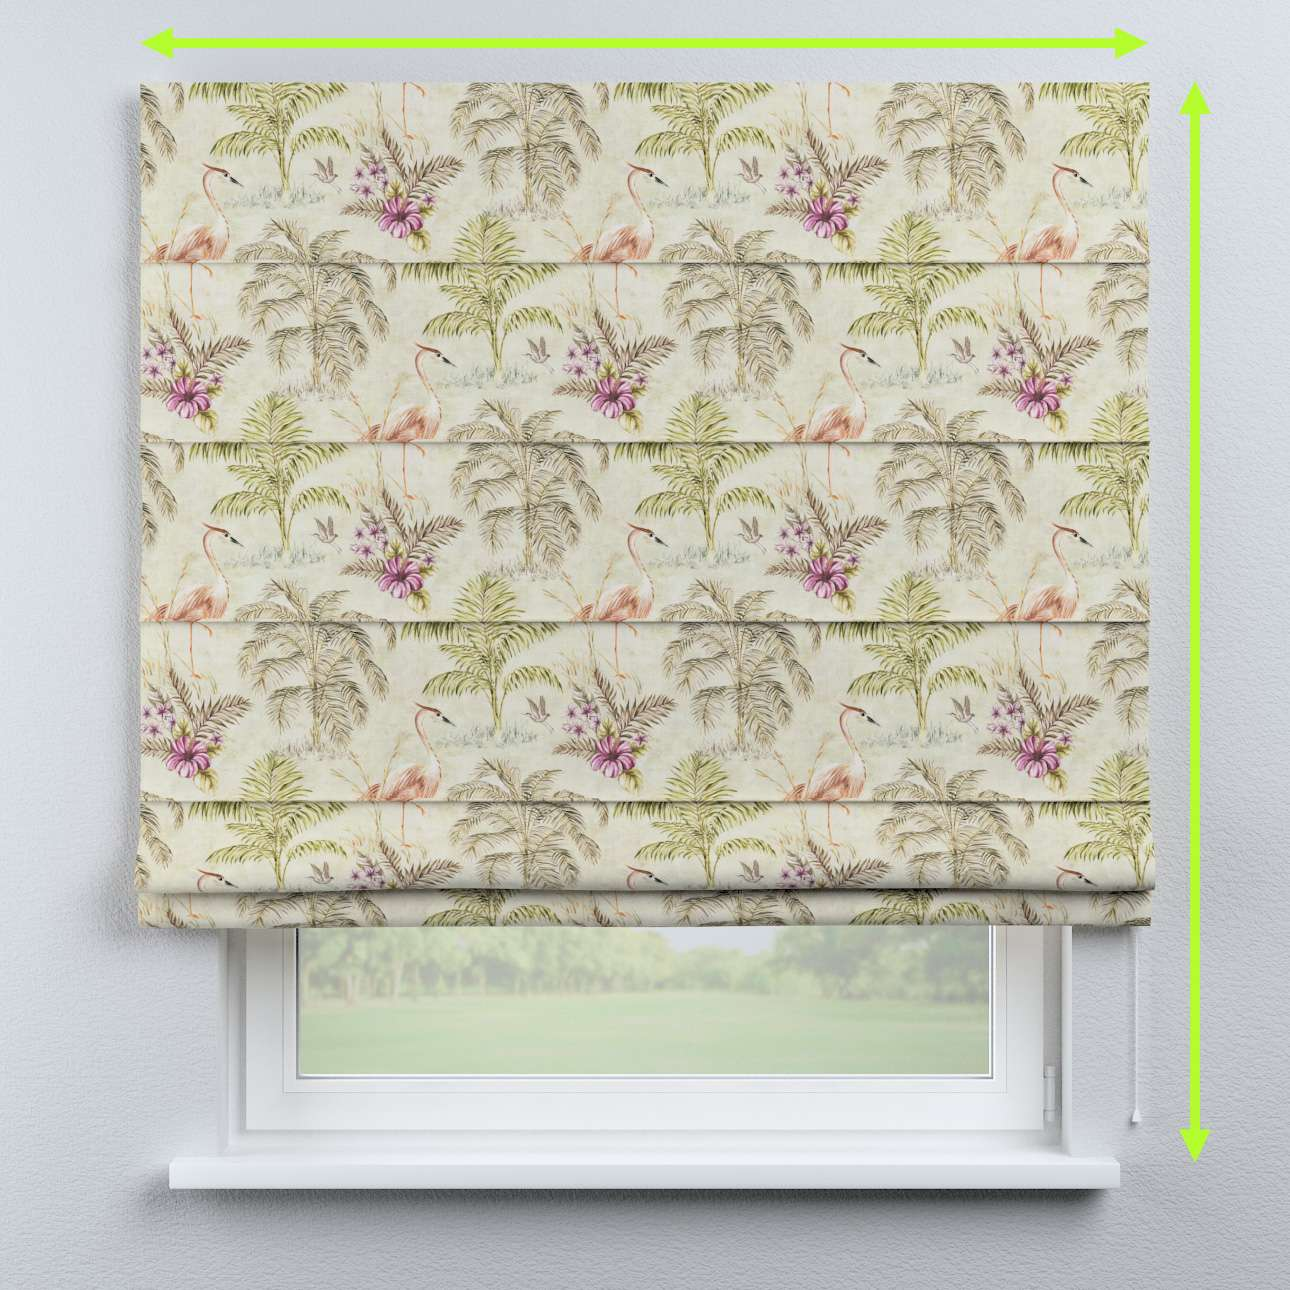 Capri roman blind in collection Tropical Island, fabric: 142-61